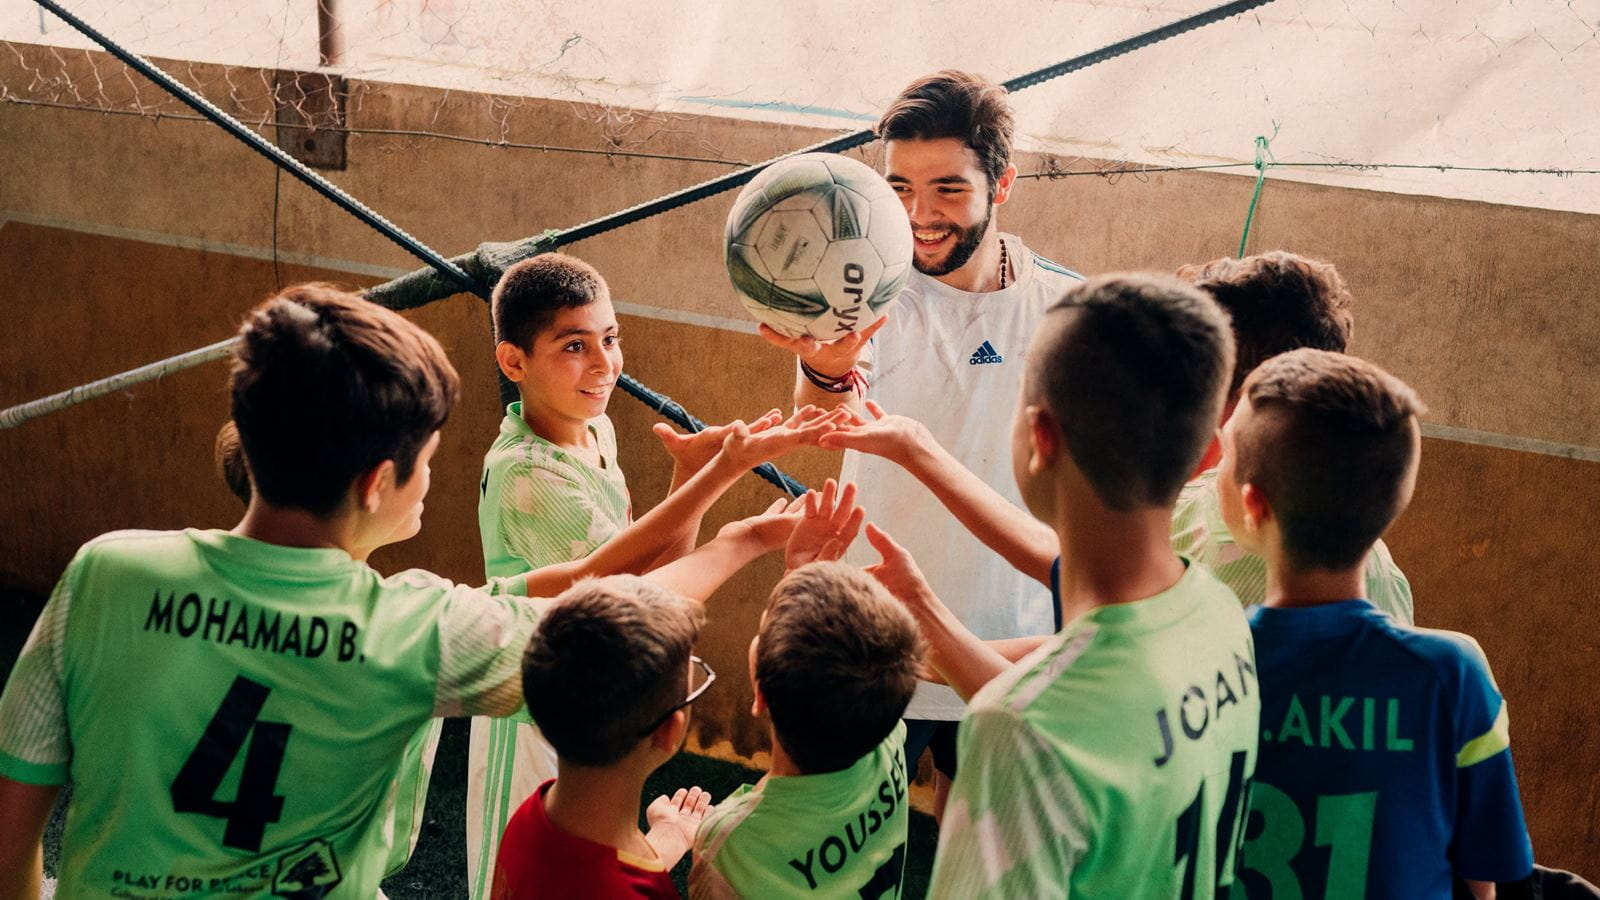 Play for Peace gives young refugees, like Saif, a place to belong. Credit: Ruth Towell/Tearfund